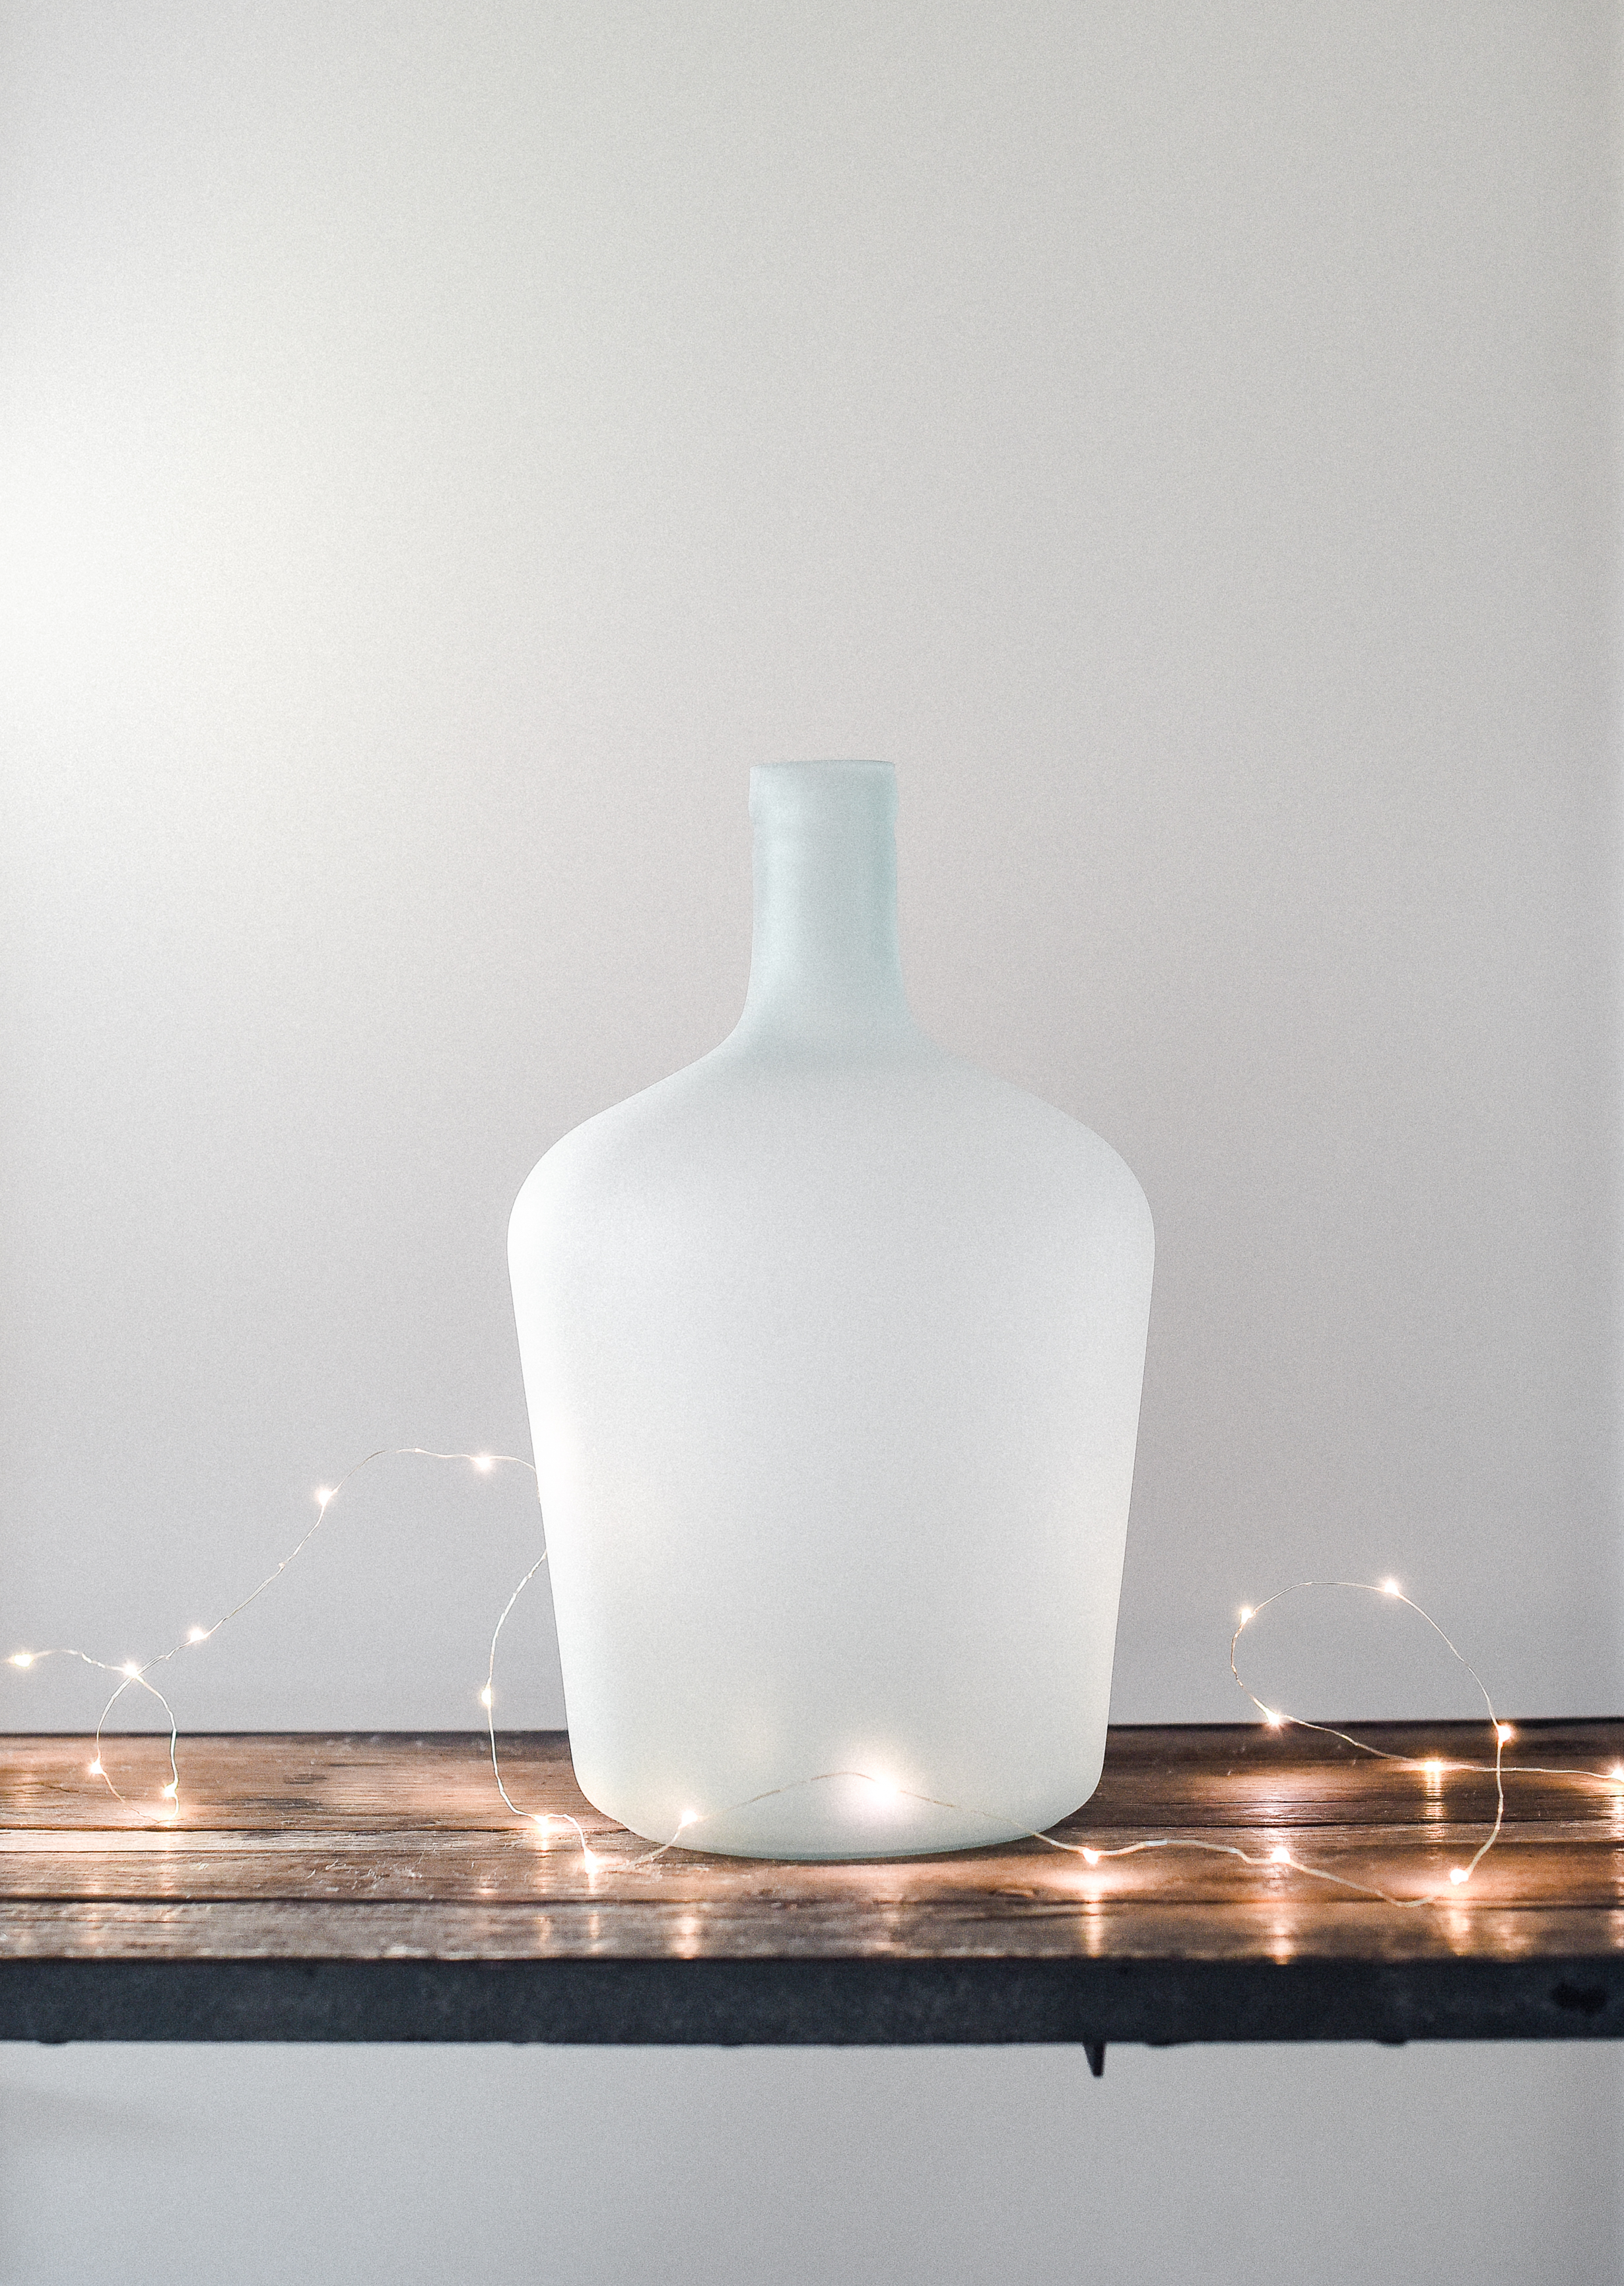 Farmhouse Christmas Ideas - Find new ways to jars, vases, and pitchers this holiday season to turn everyday farmhouse items into beautiful Christmas decor! I love adding twinkle lights or fresh clipped evergreen!